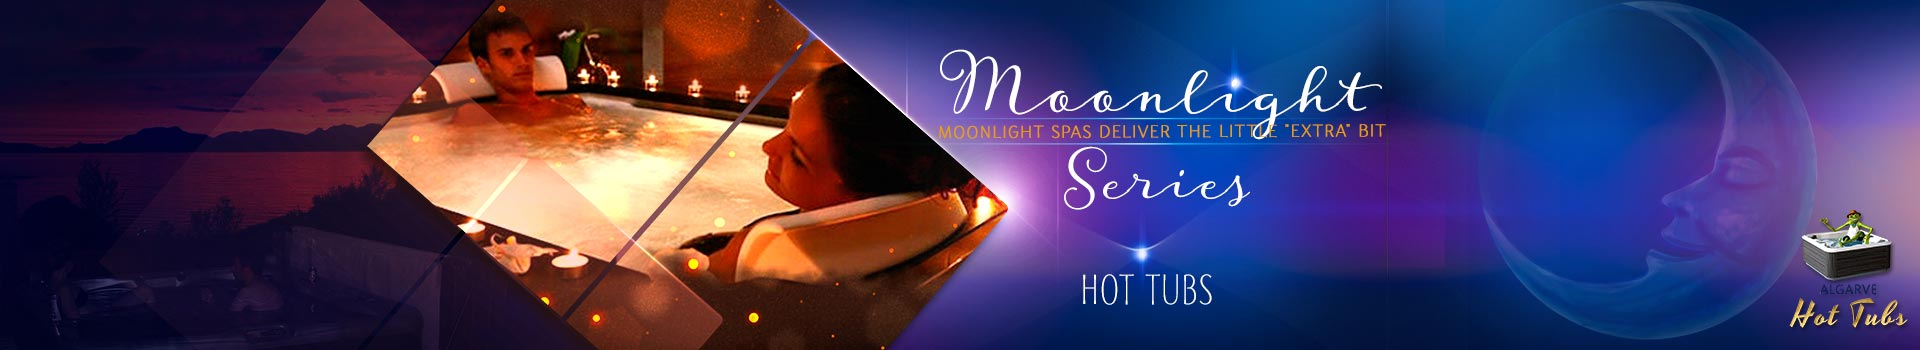 Hottubs - Moonlight Series - Wellness Dreams Algarve